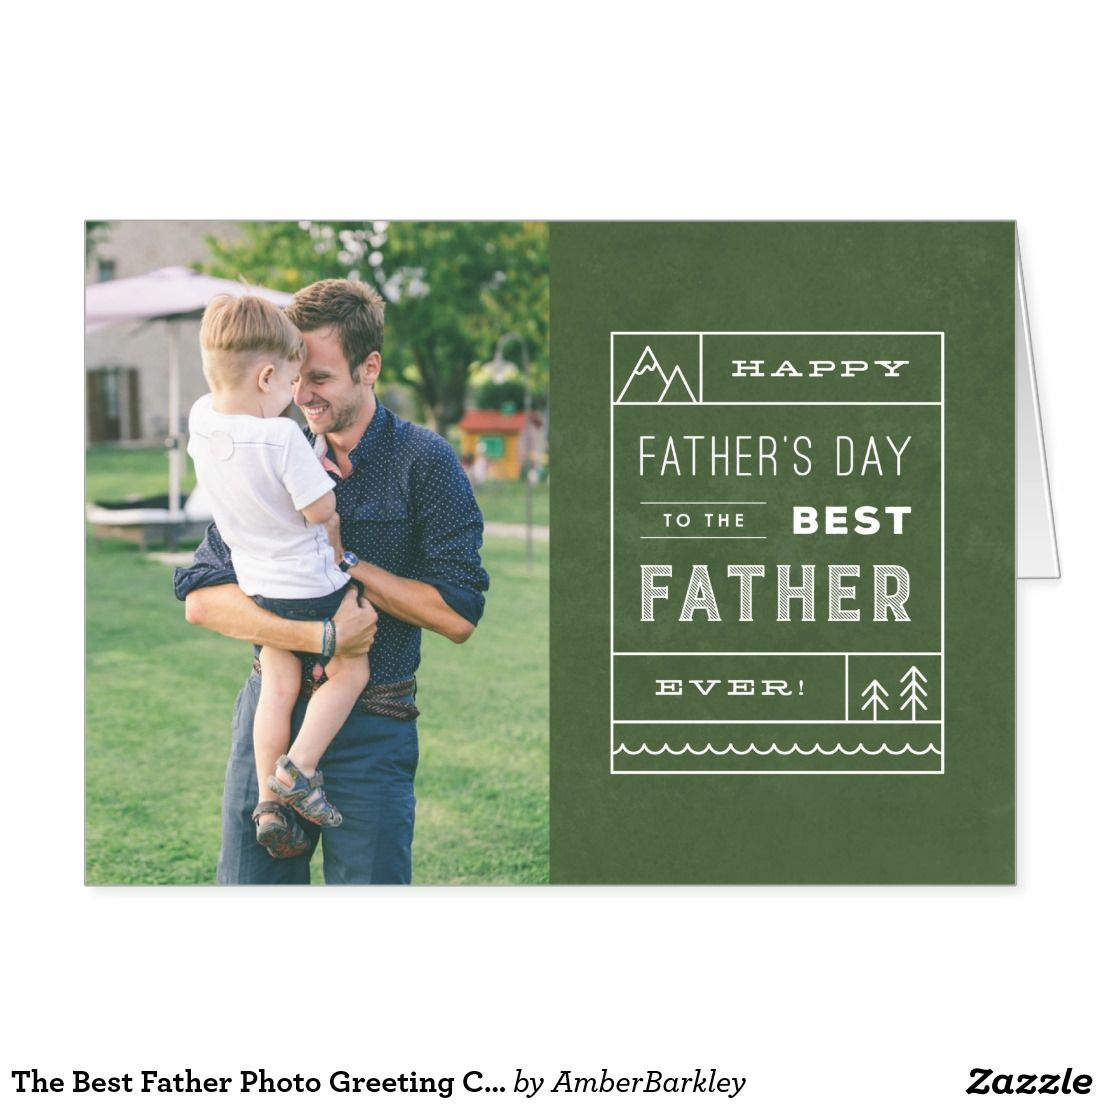 The Best Father Photo Greeting Card Army Photo Greeting Cards